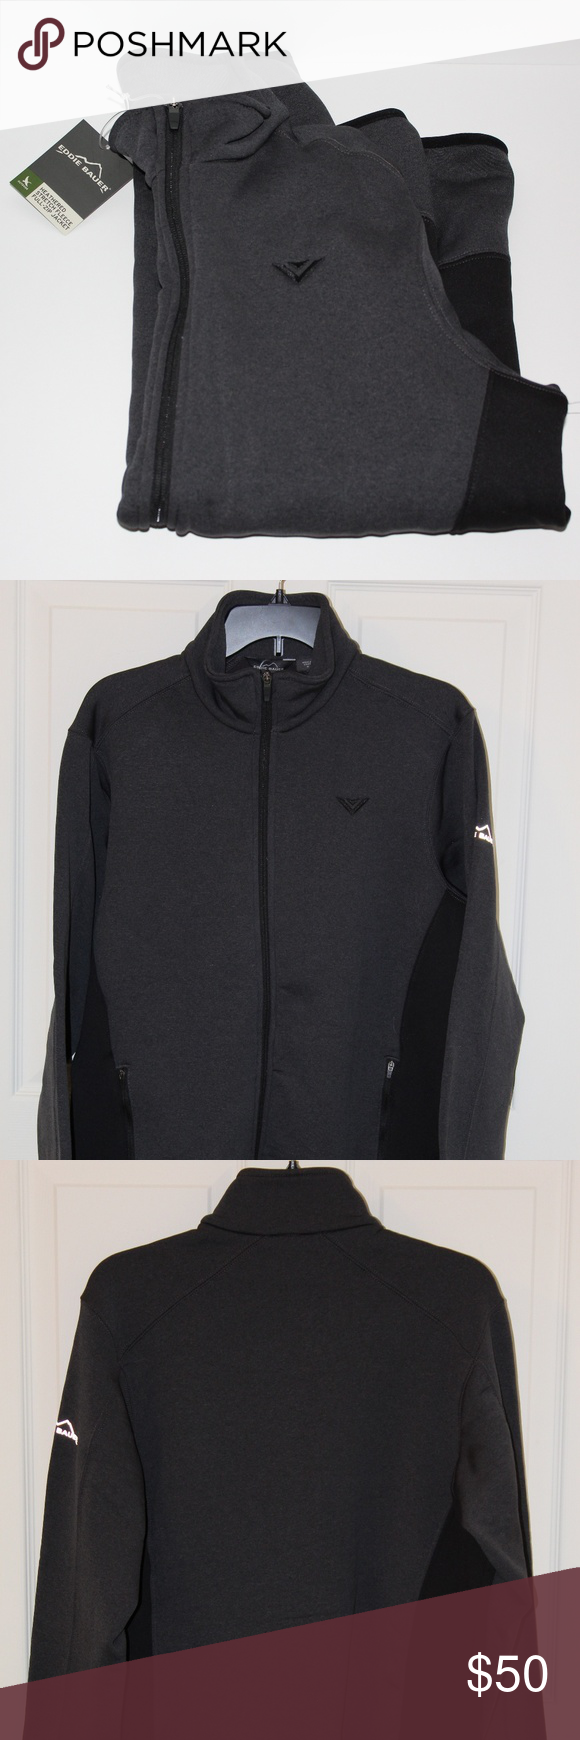 EDDIE BAUER HEATHERED FLEECE JACKET W/ VIZIO LOGO Boutique